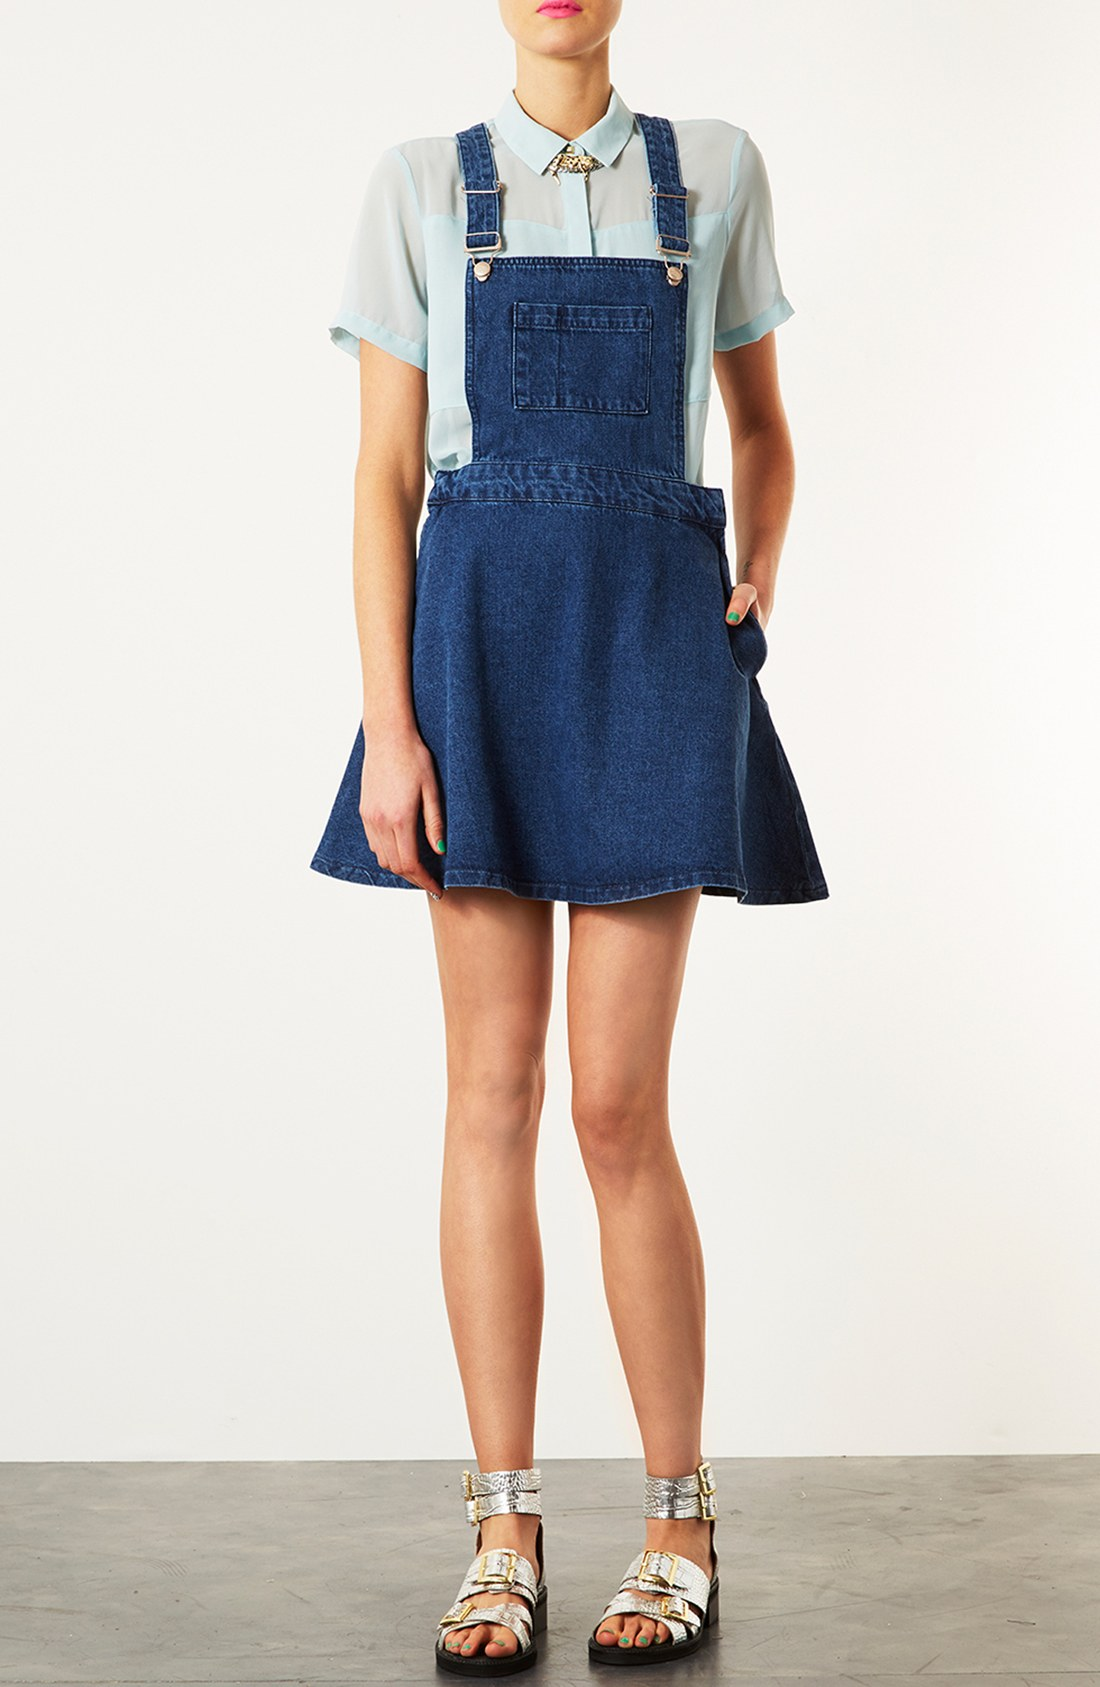 Denim Moto Dress - Cute denim dress in a sleek moto design. Exposed front zip pockets. Detachable buckle belt. 3/4 sleeves. Asymmetric front zip closure.